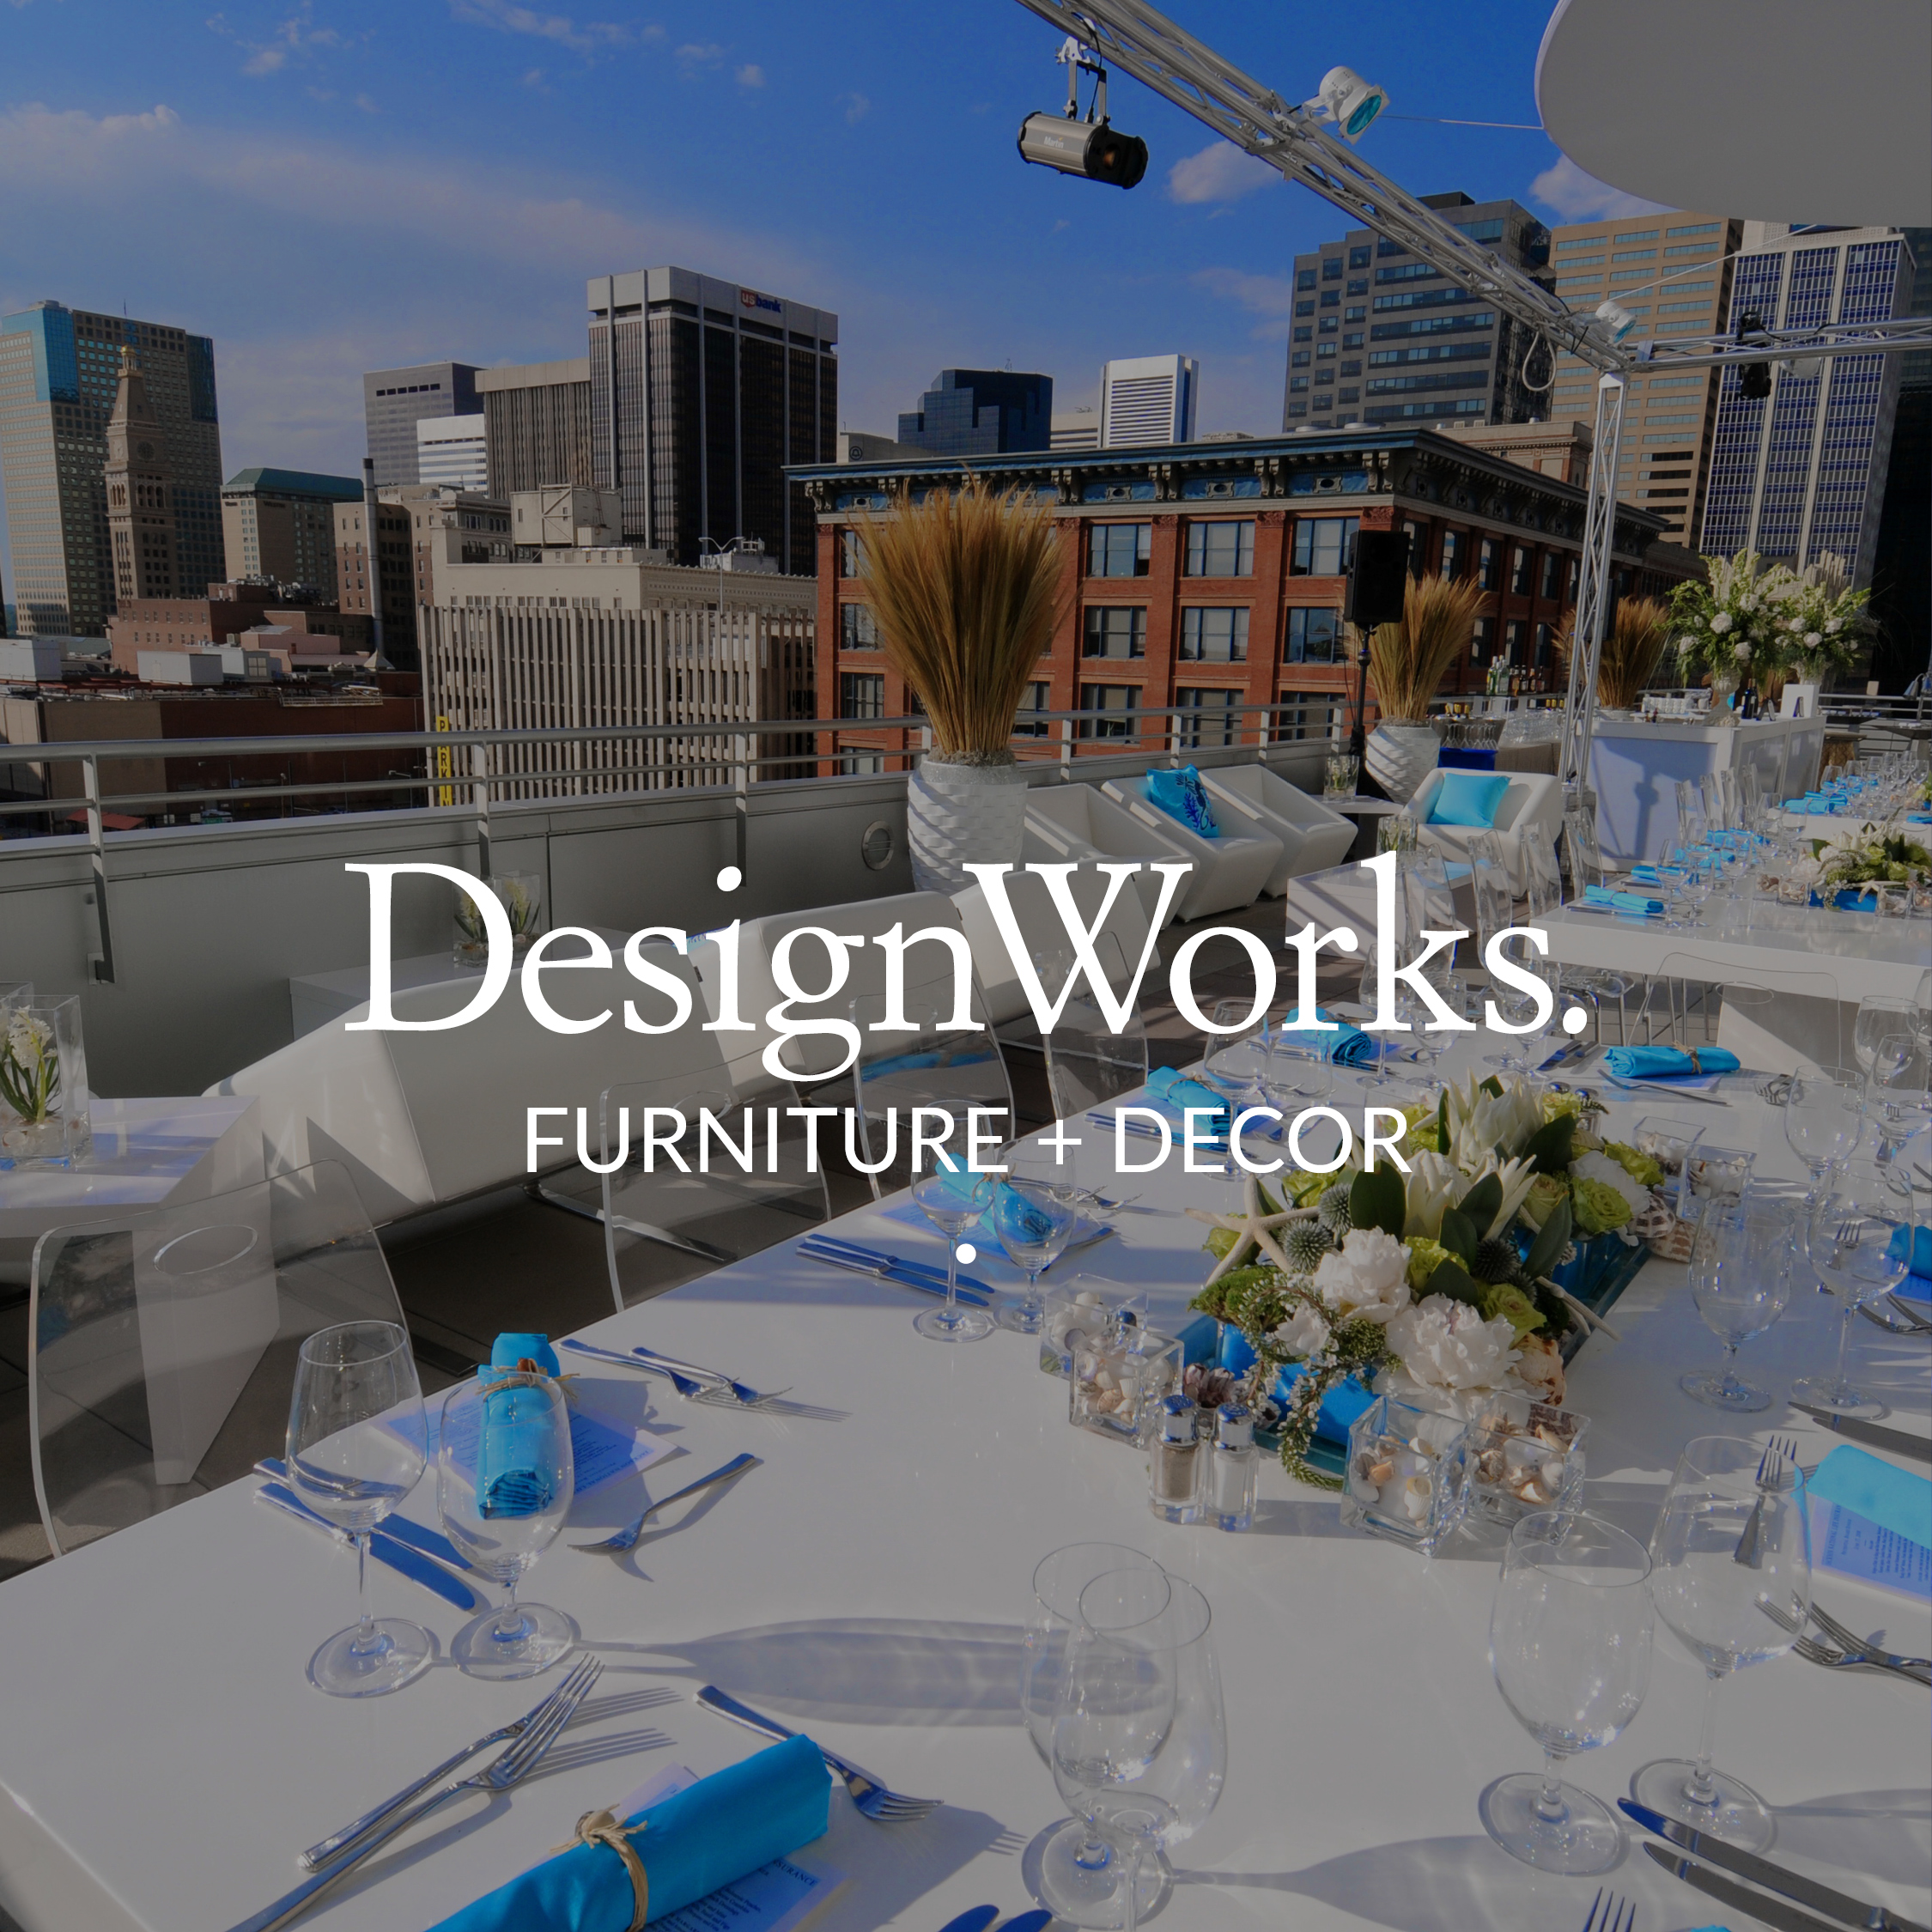 Design Works Service Furniture and Decor